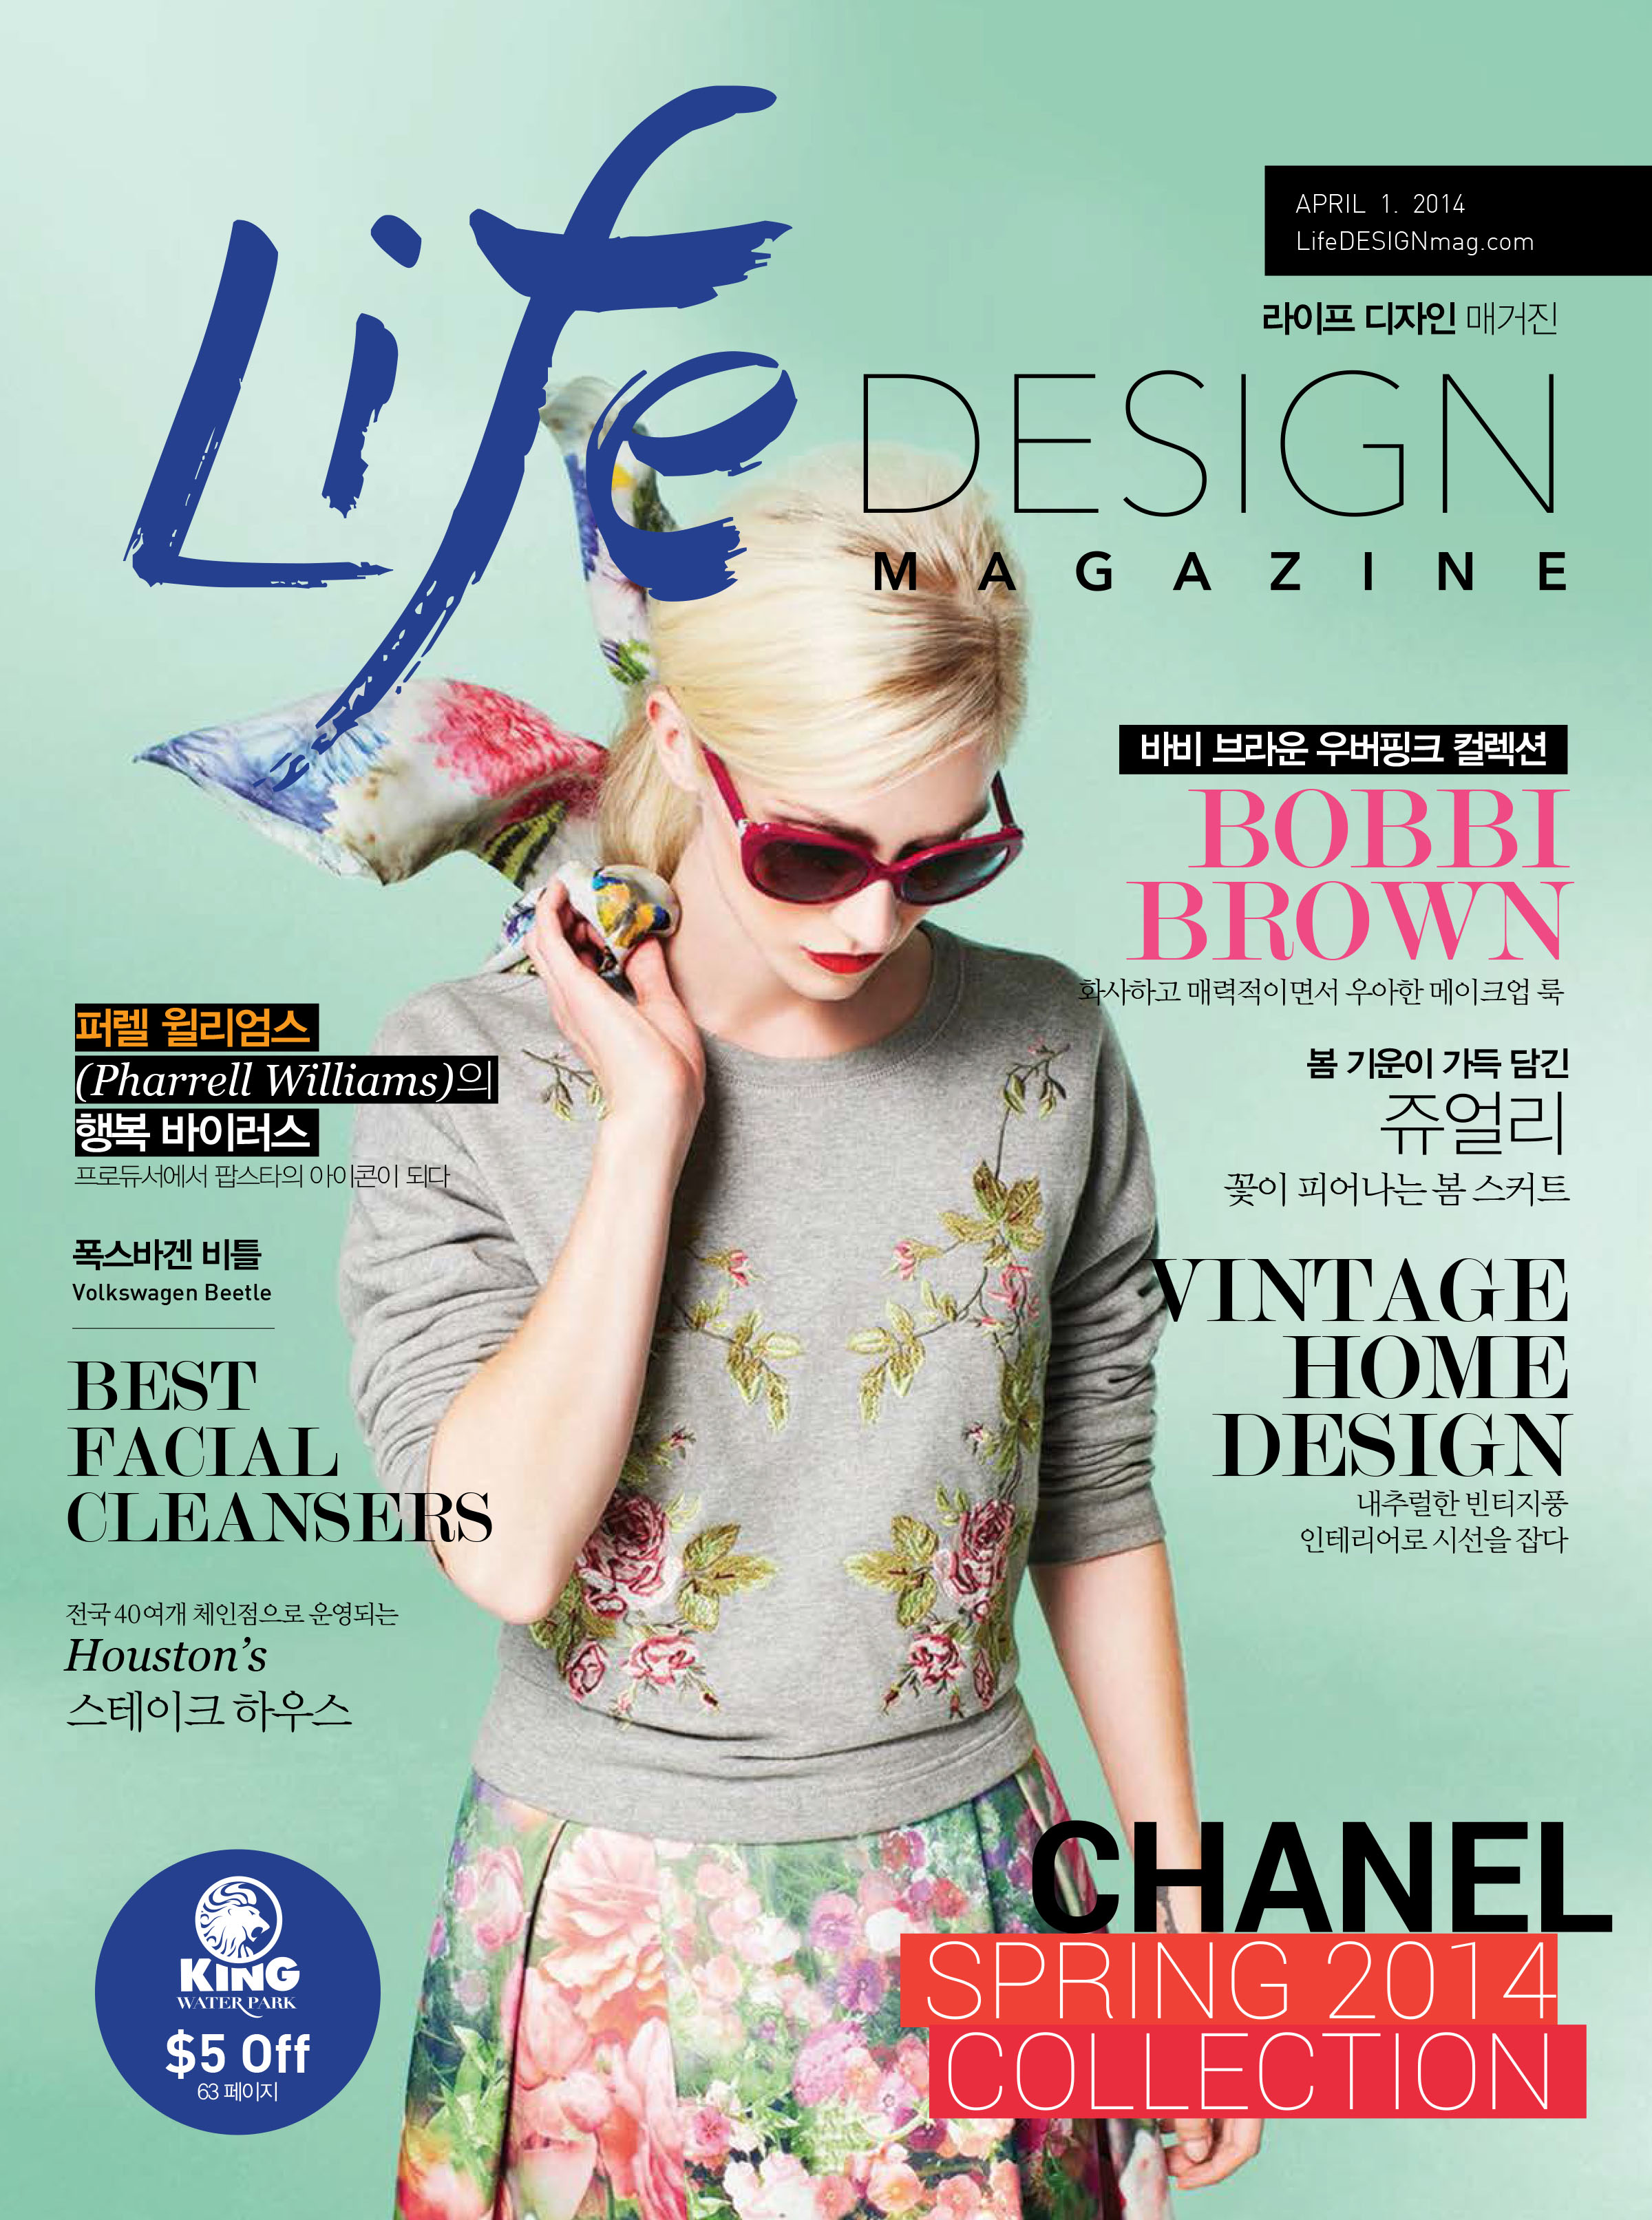 2014-04 LifeDESIGN - COVER.jpg